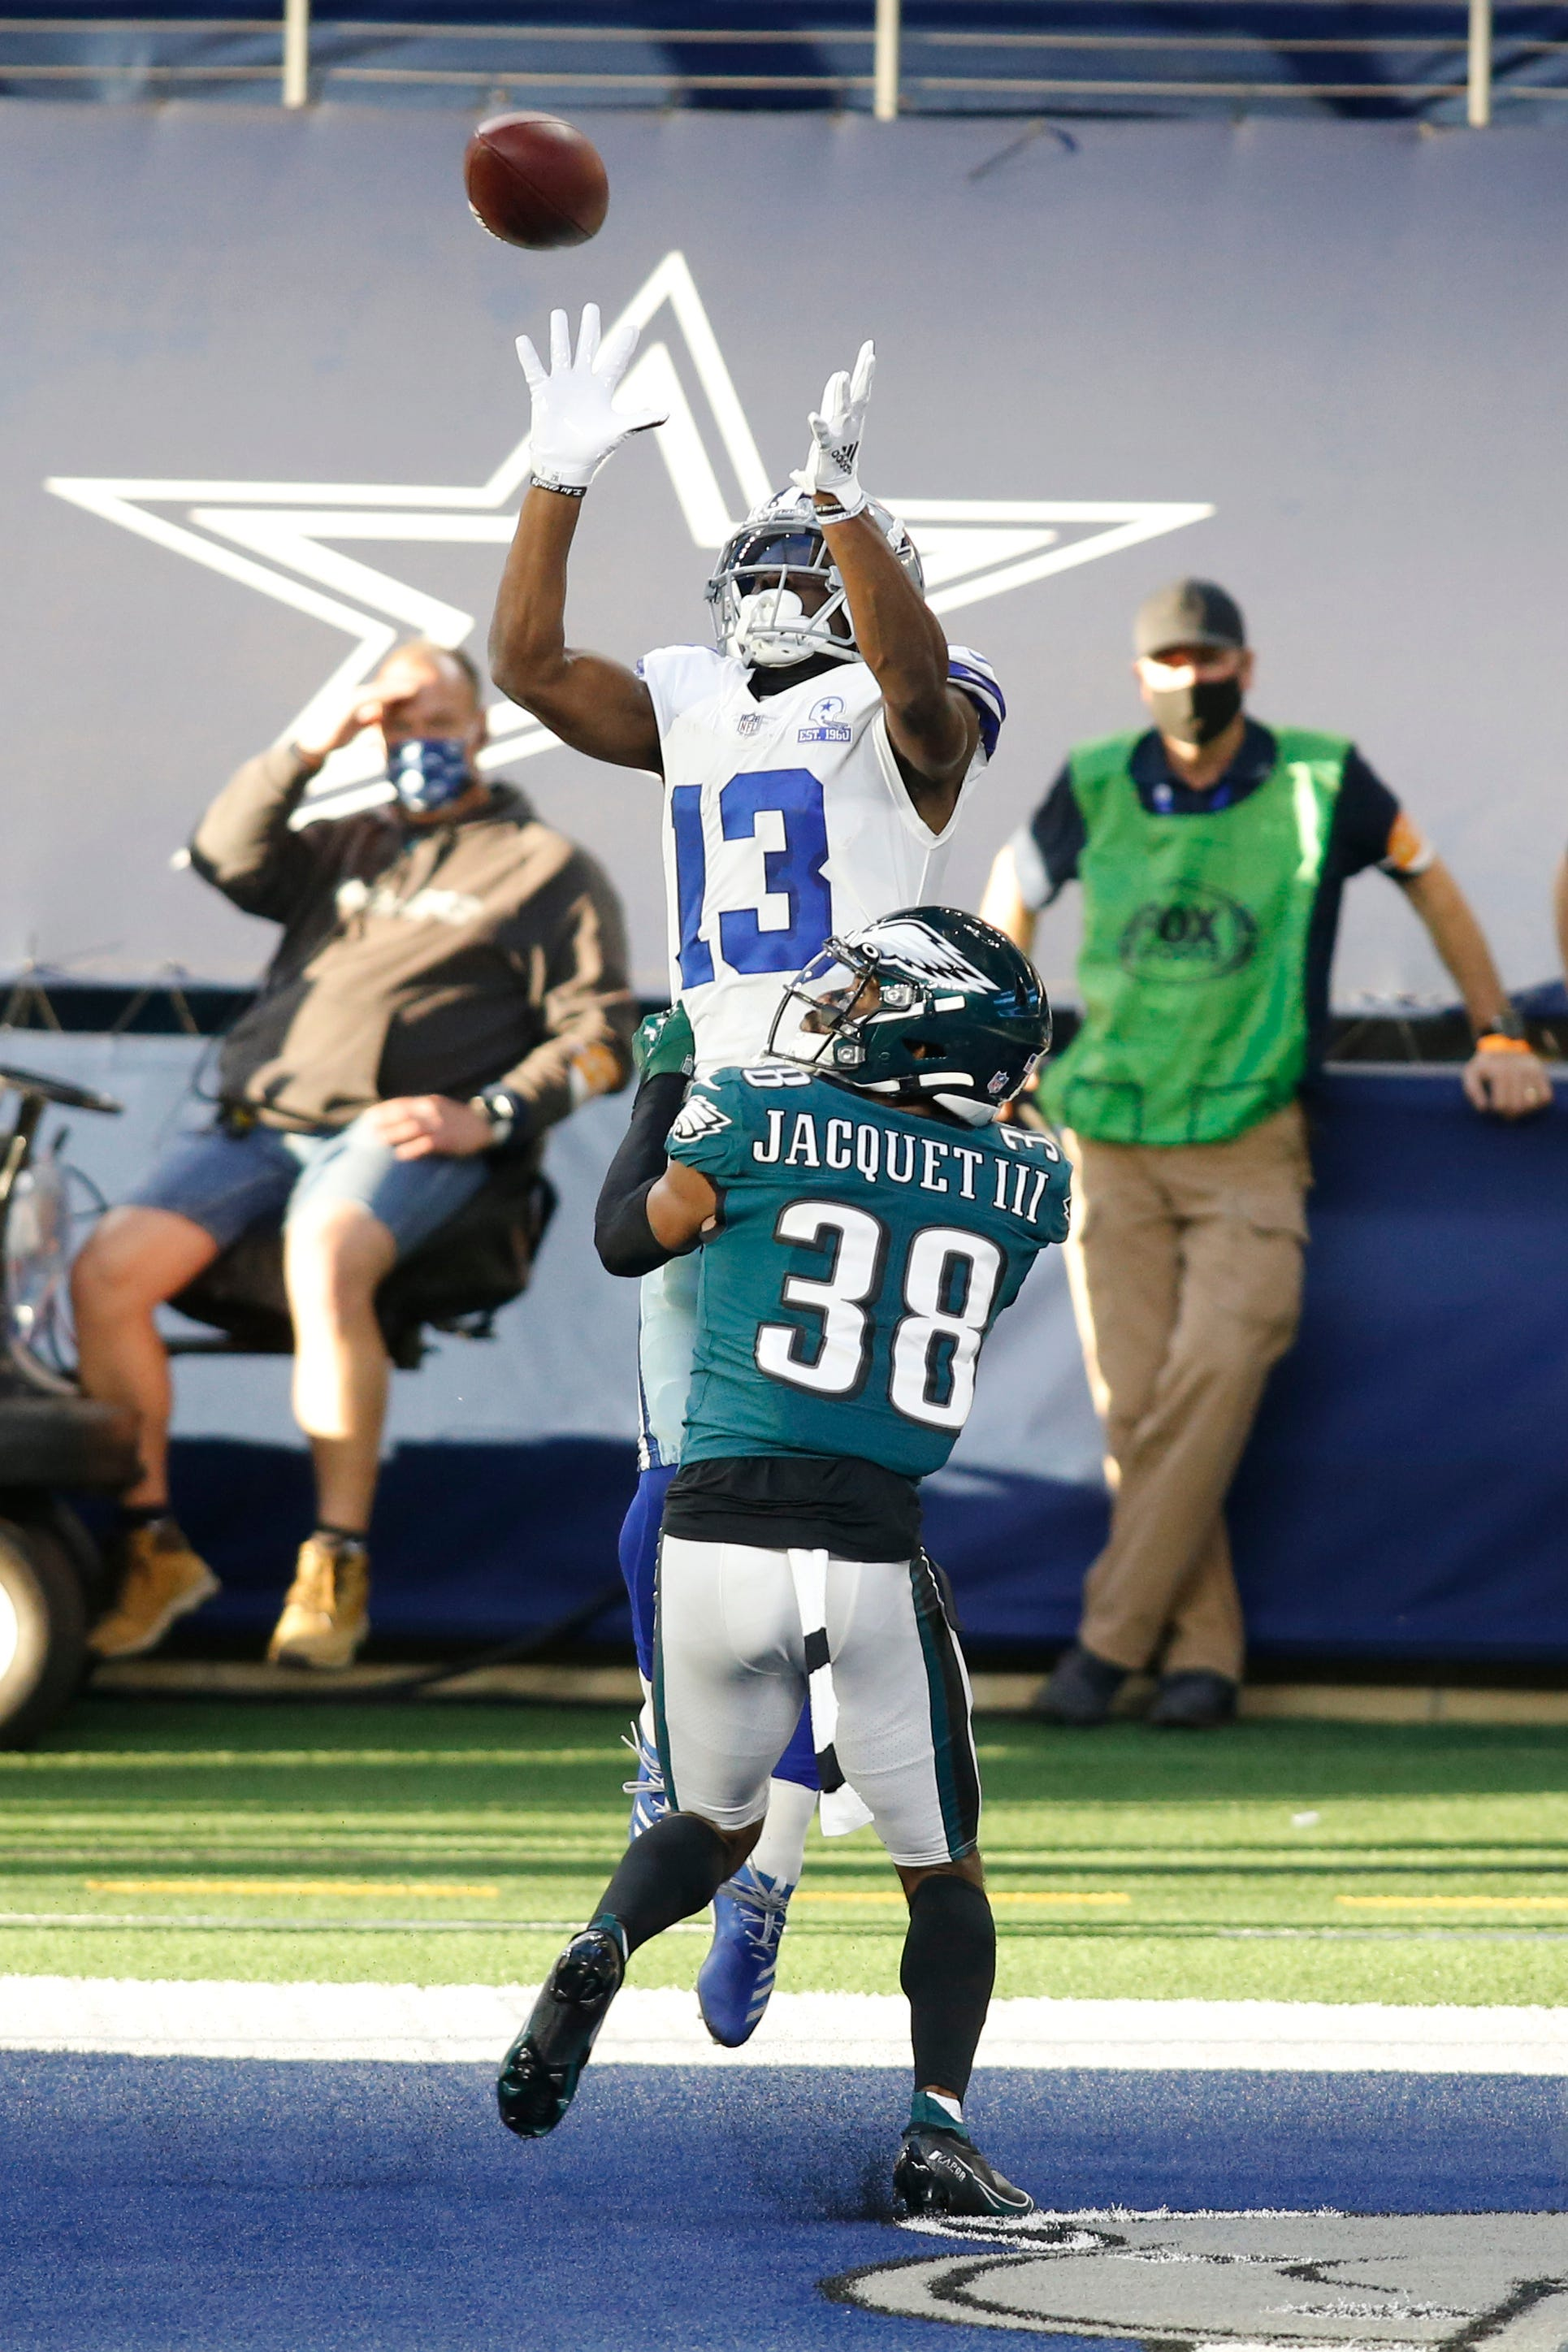 With one game left, Dallas Cowboys keep NFL playoff hopes alive by beating Philadelphia Eagles